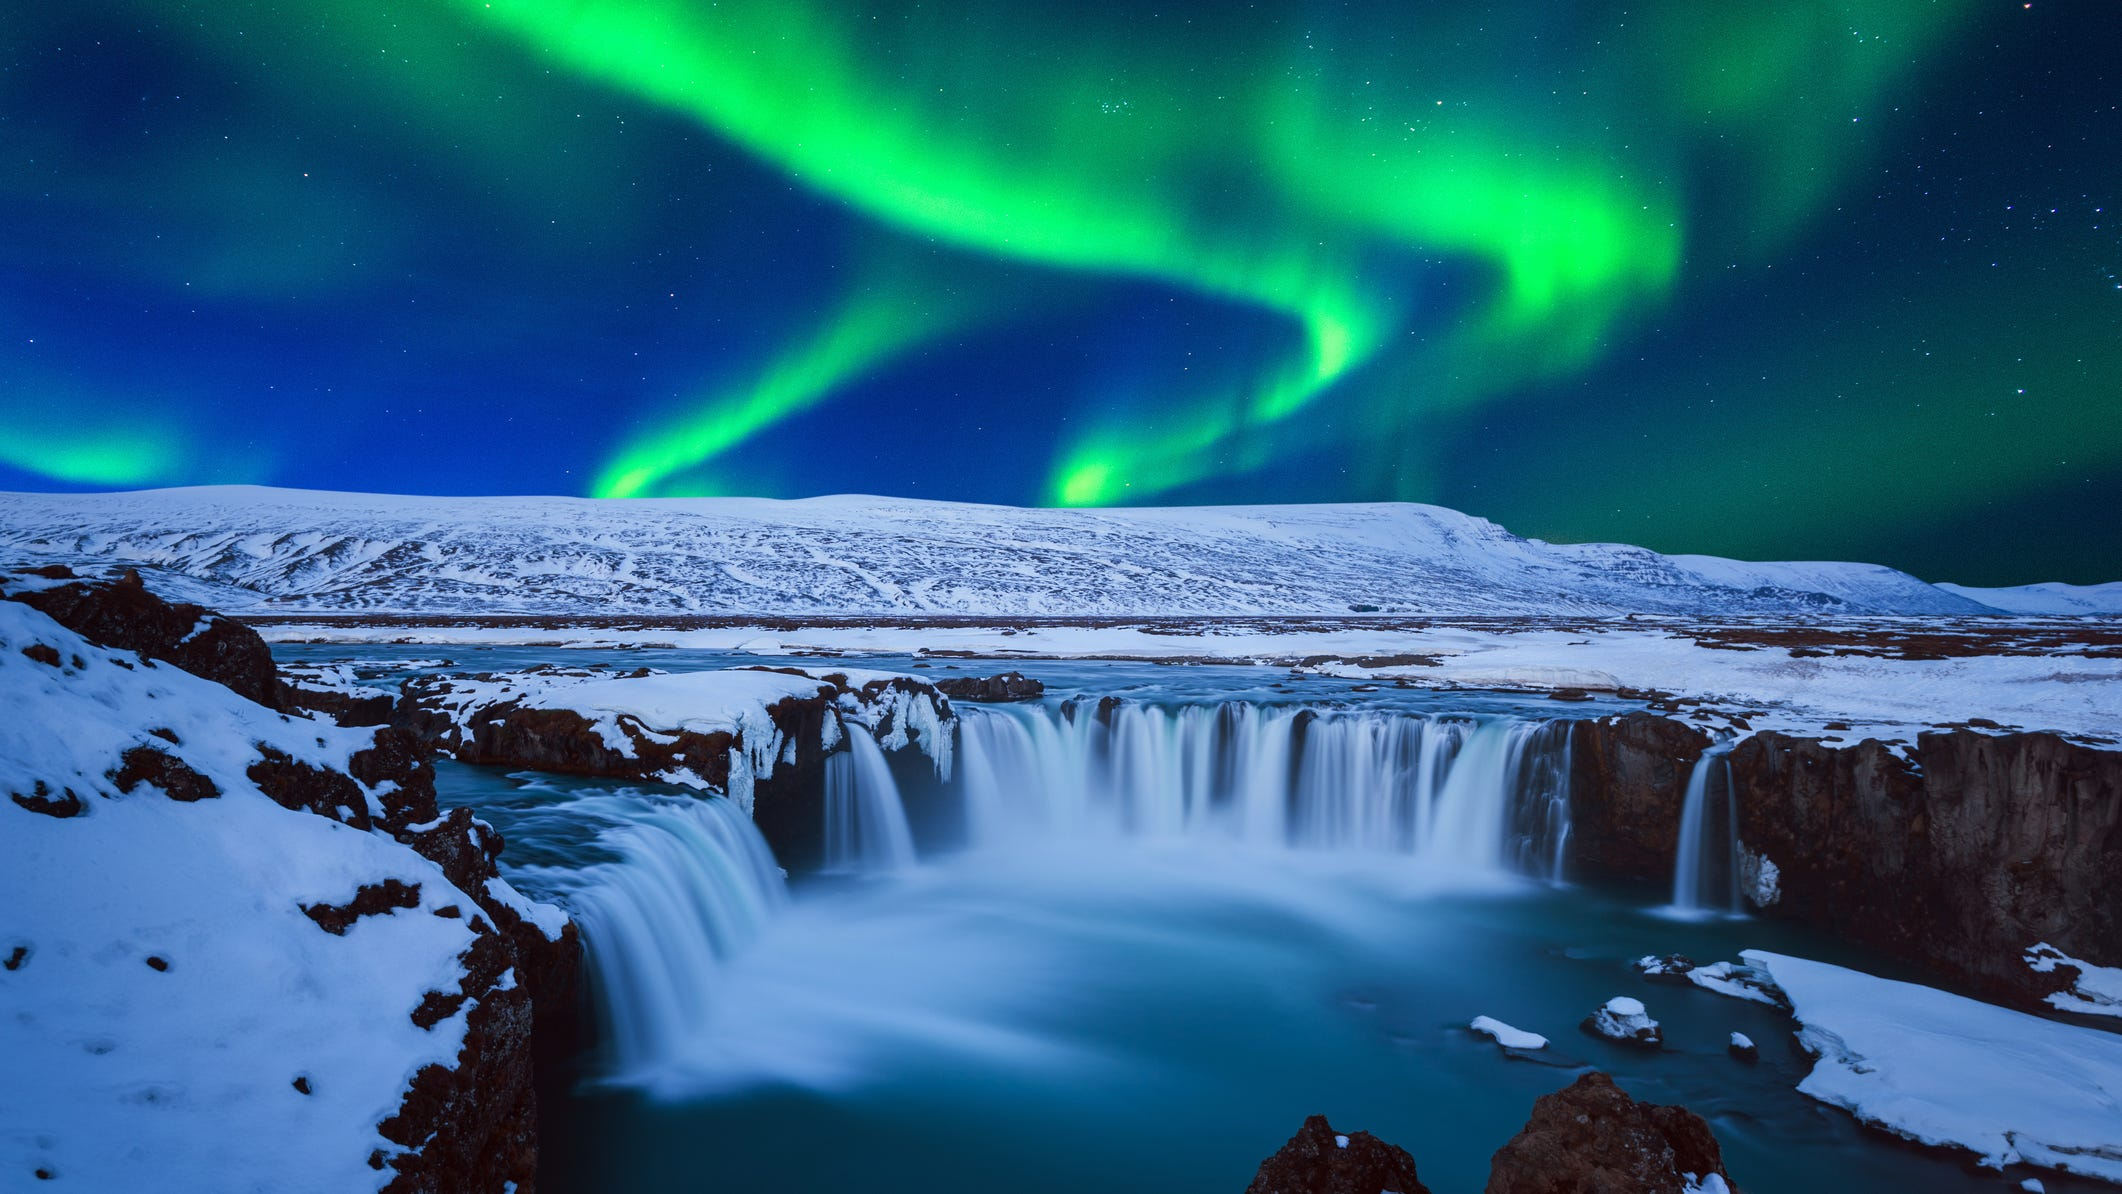 Northern lights: Aurora borealis could be coming to northern U.S.